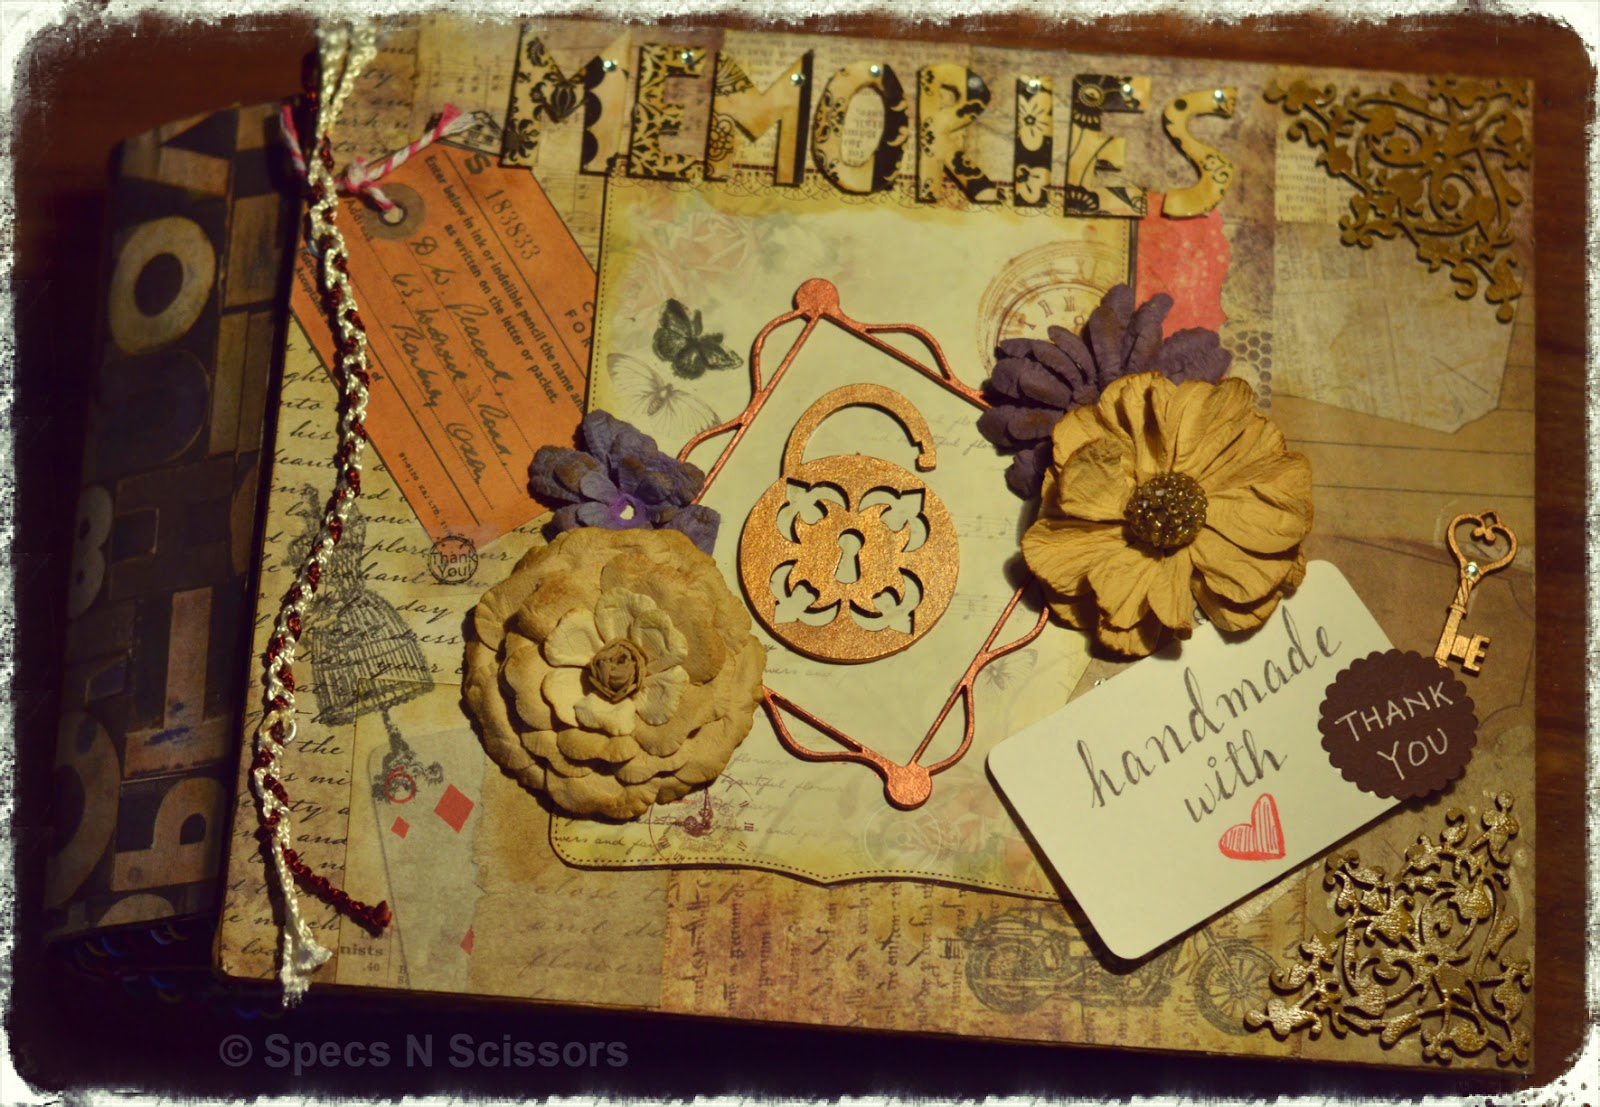 Specs N Scissors - Customized Gifts - Vintage Album